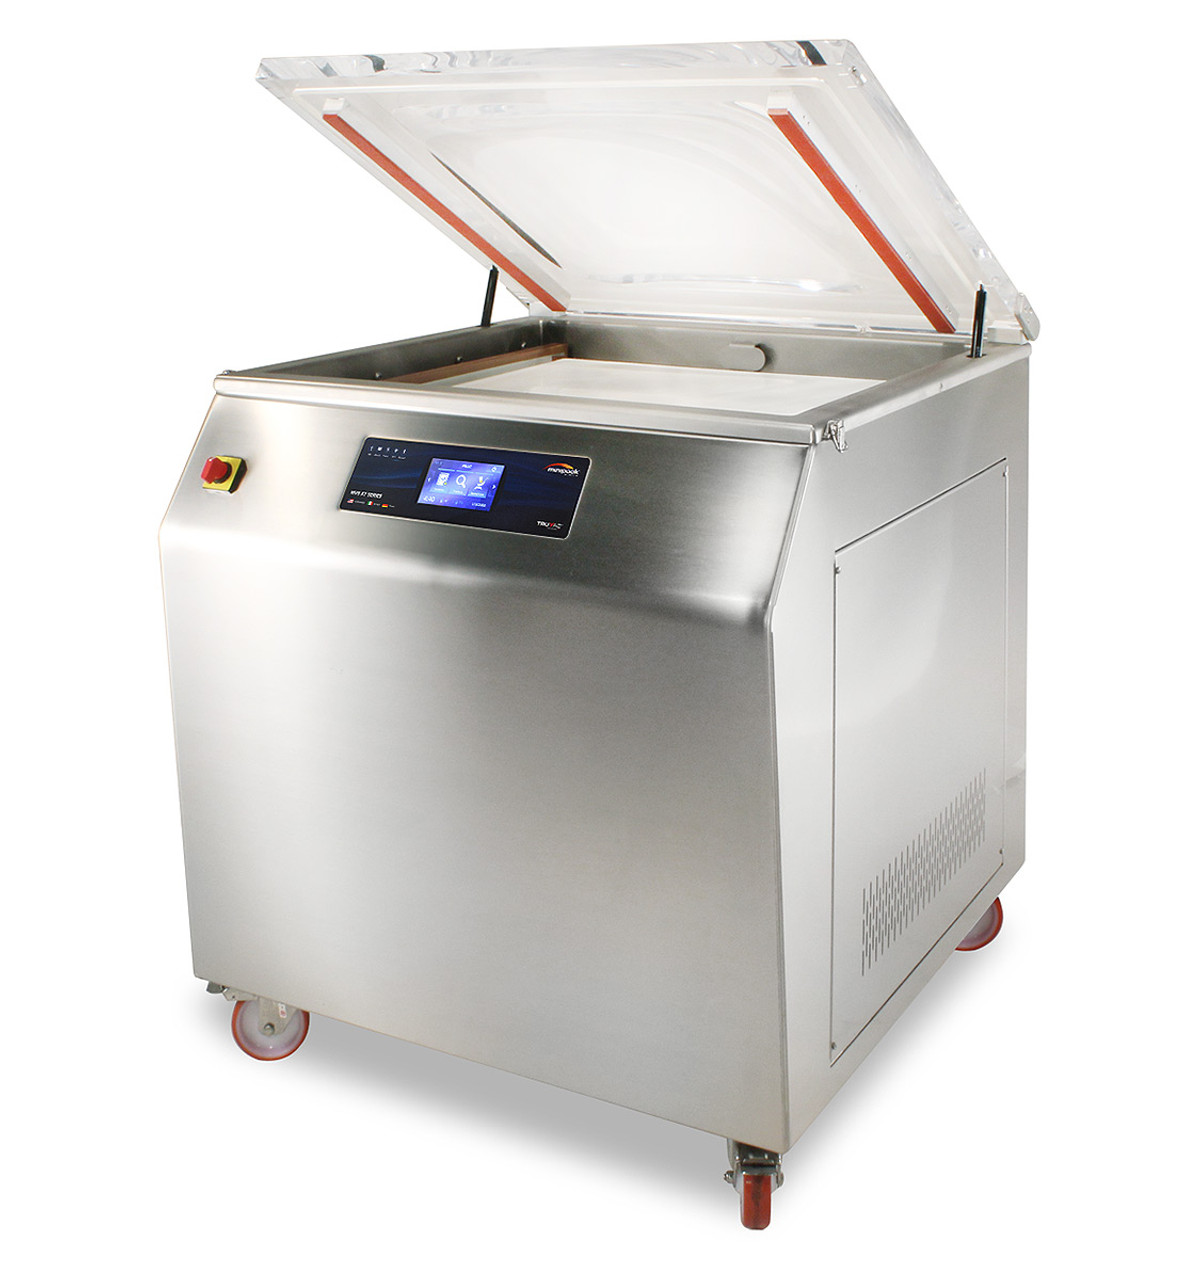 MiniPack MV 65 VacSmart - Chamber Vacuum Packing Machine